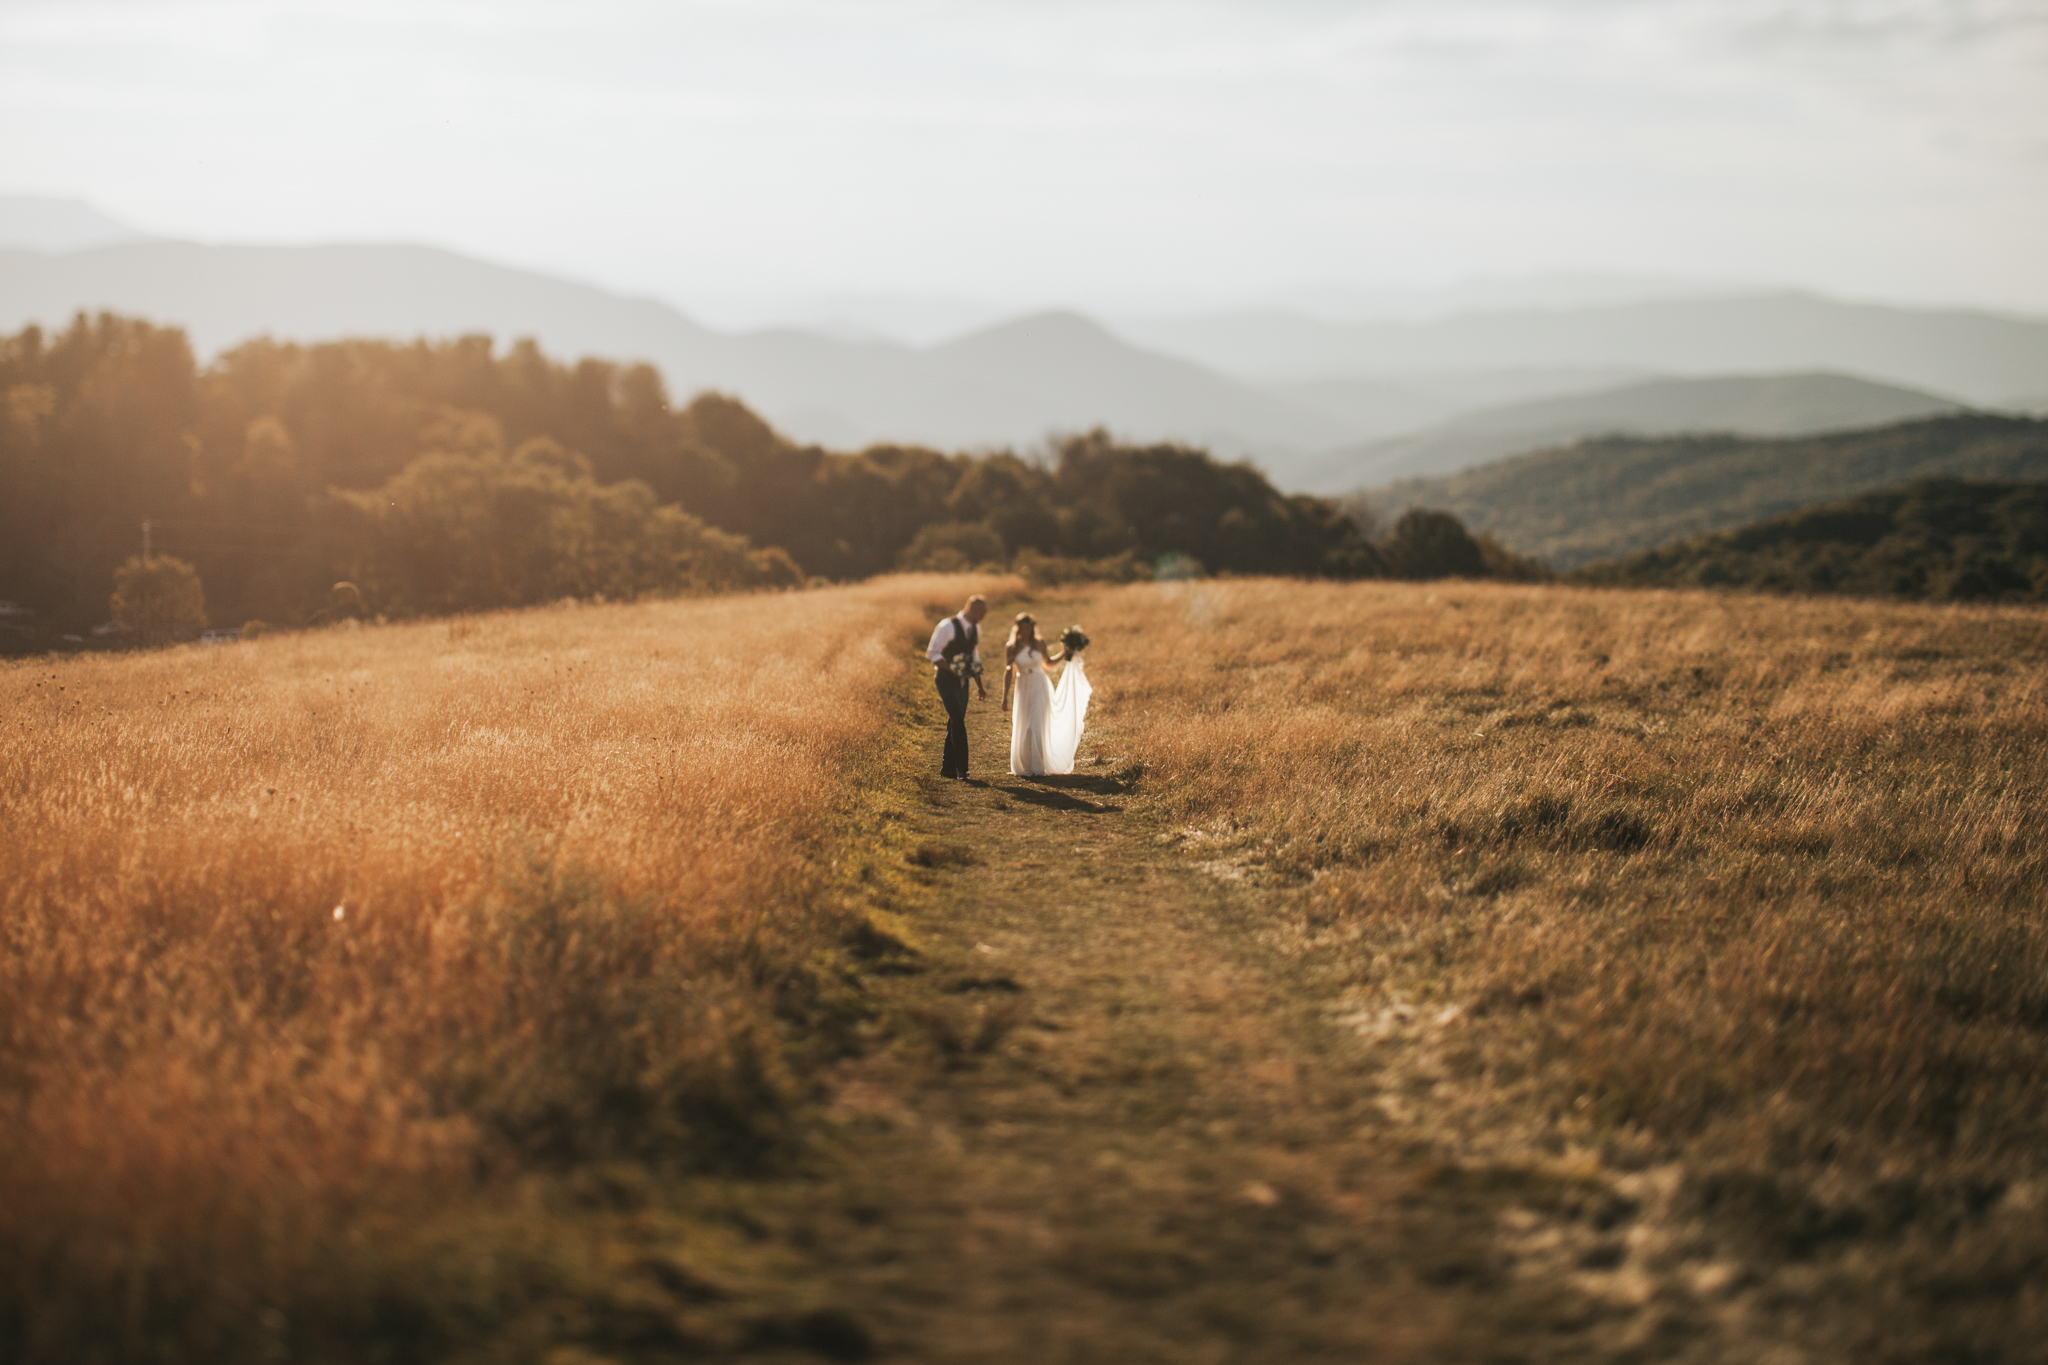 Max Patch Wedding Elopement Photography Photographer Asheville North Carolina Destination Mountains